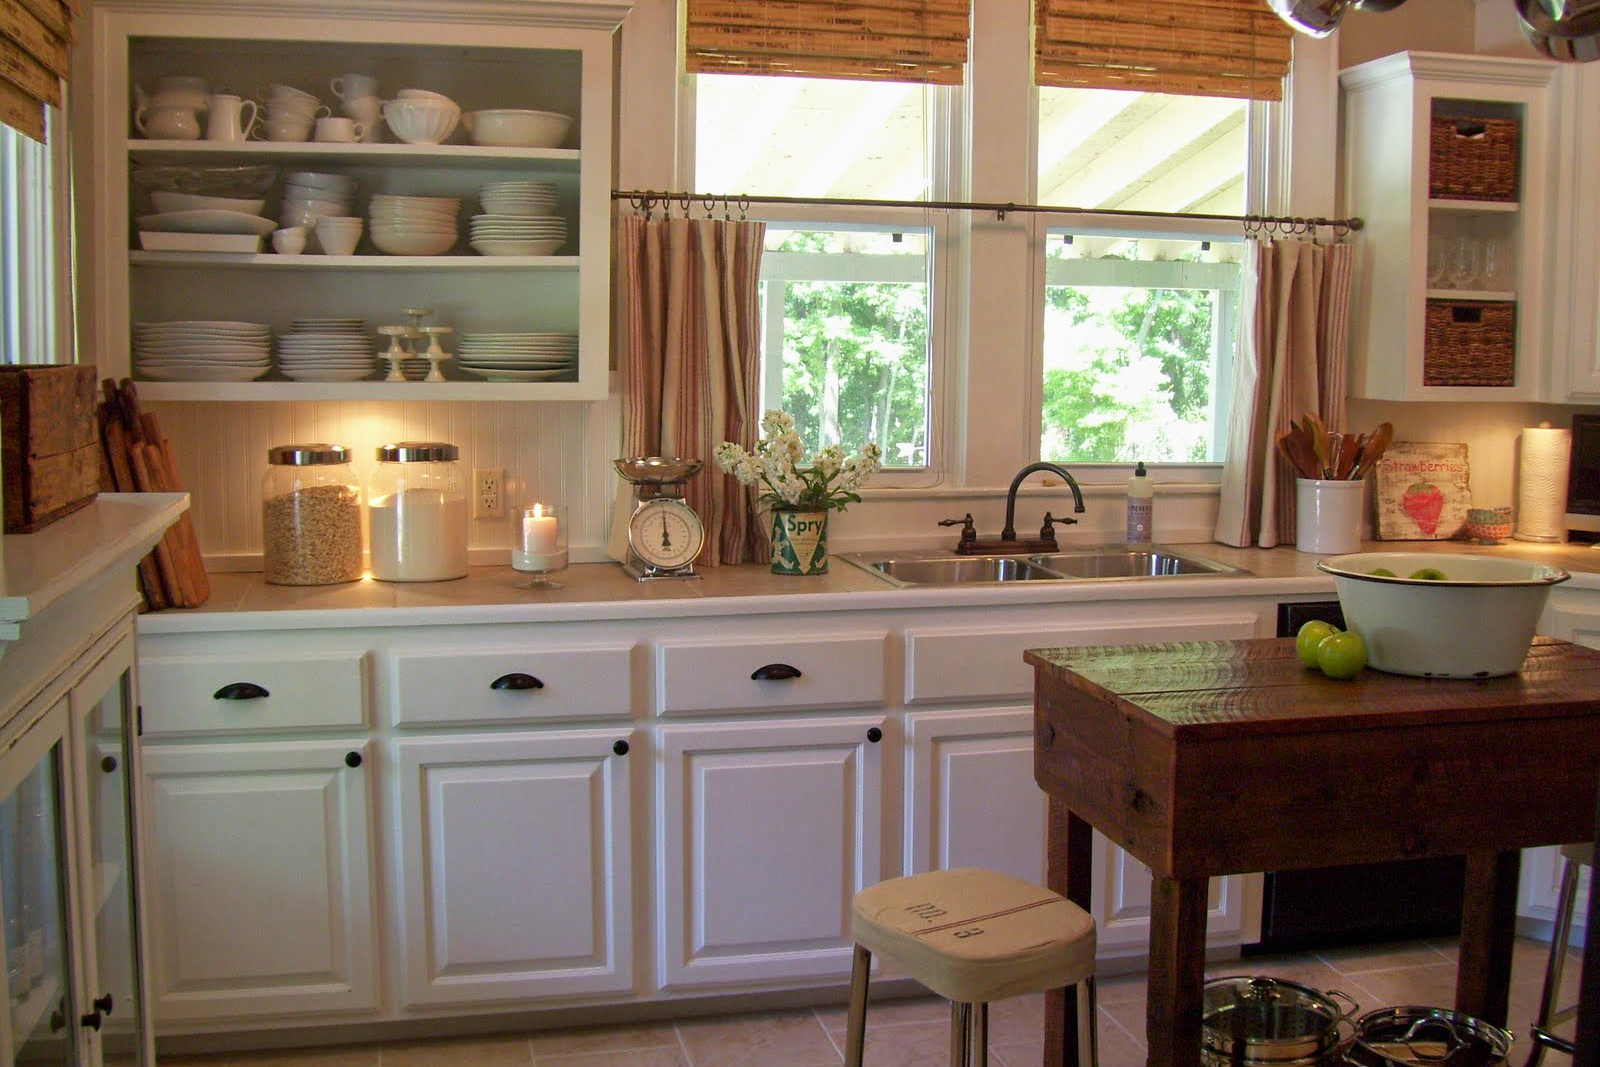 10 Attractive Do It Yourself Home Improvement Ideas diy kitchen remodel budget kitchen remodel 2 2020